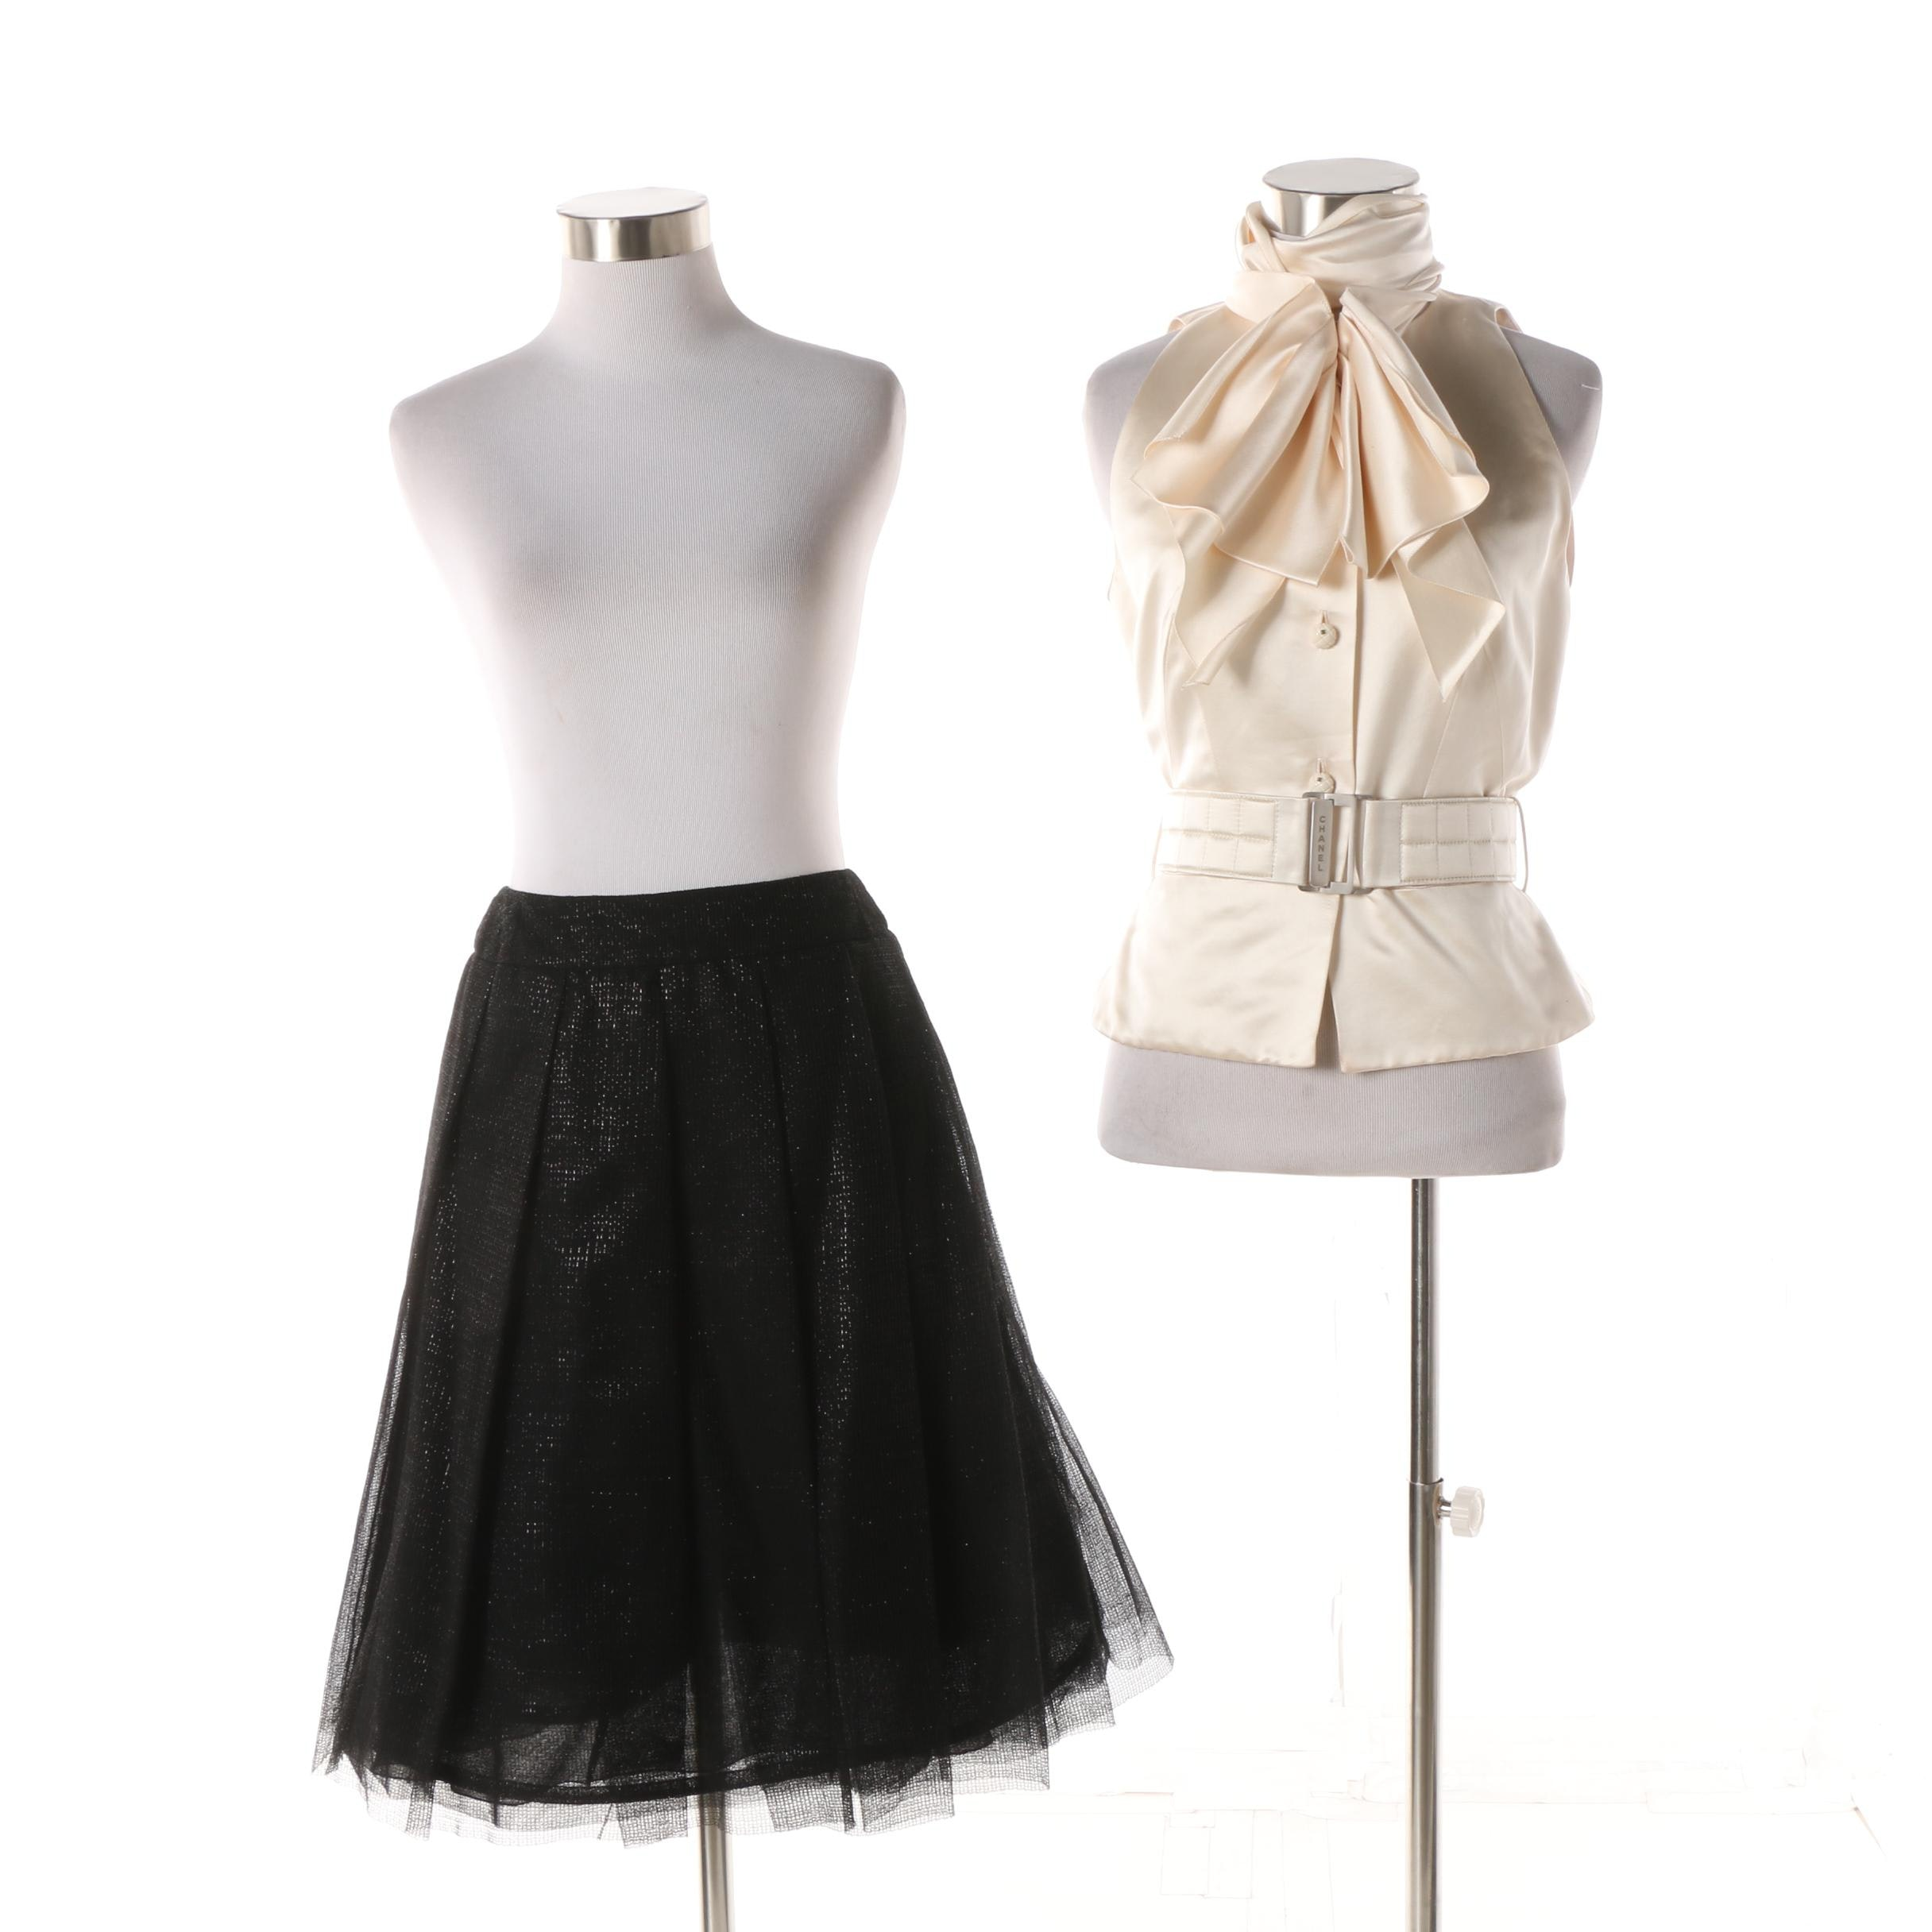 Chanel Ivory Silk Blouse and Black Tulle Overlay Pleated Skirt